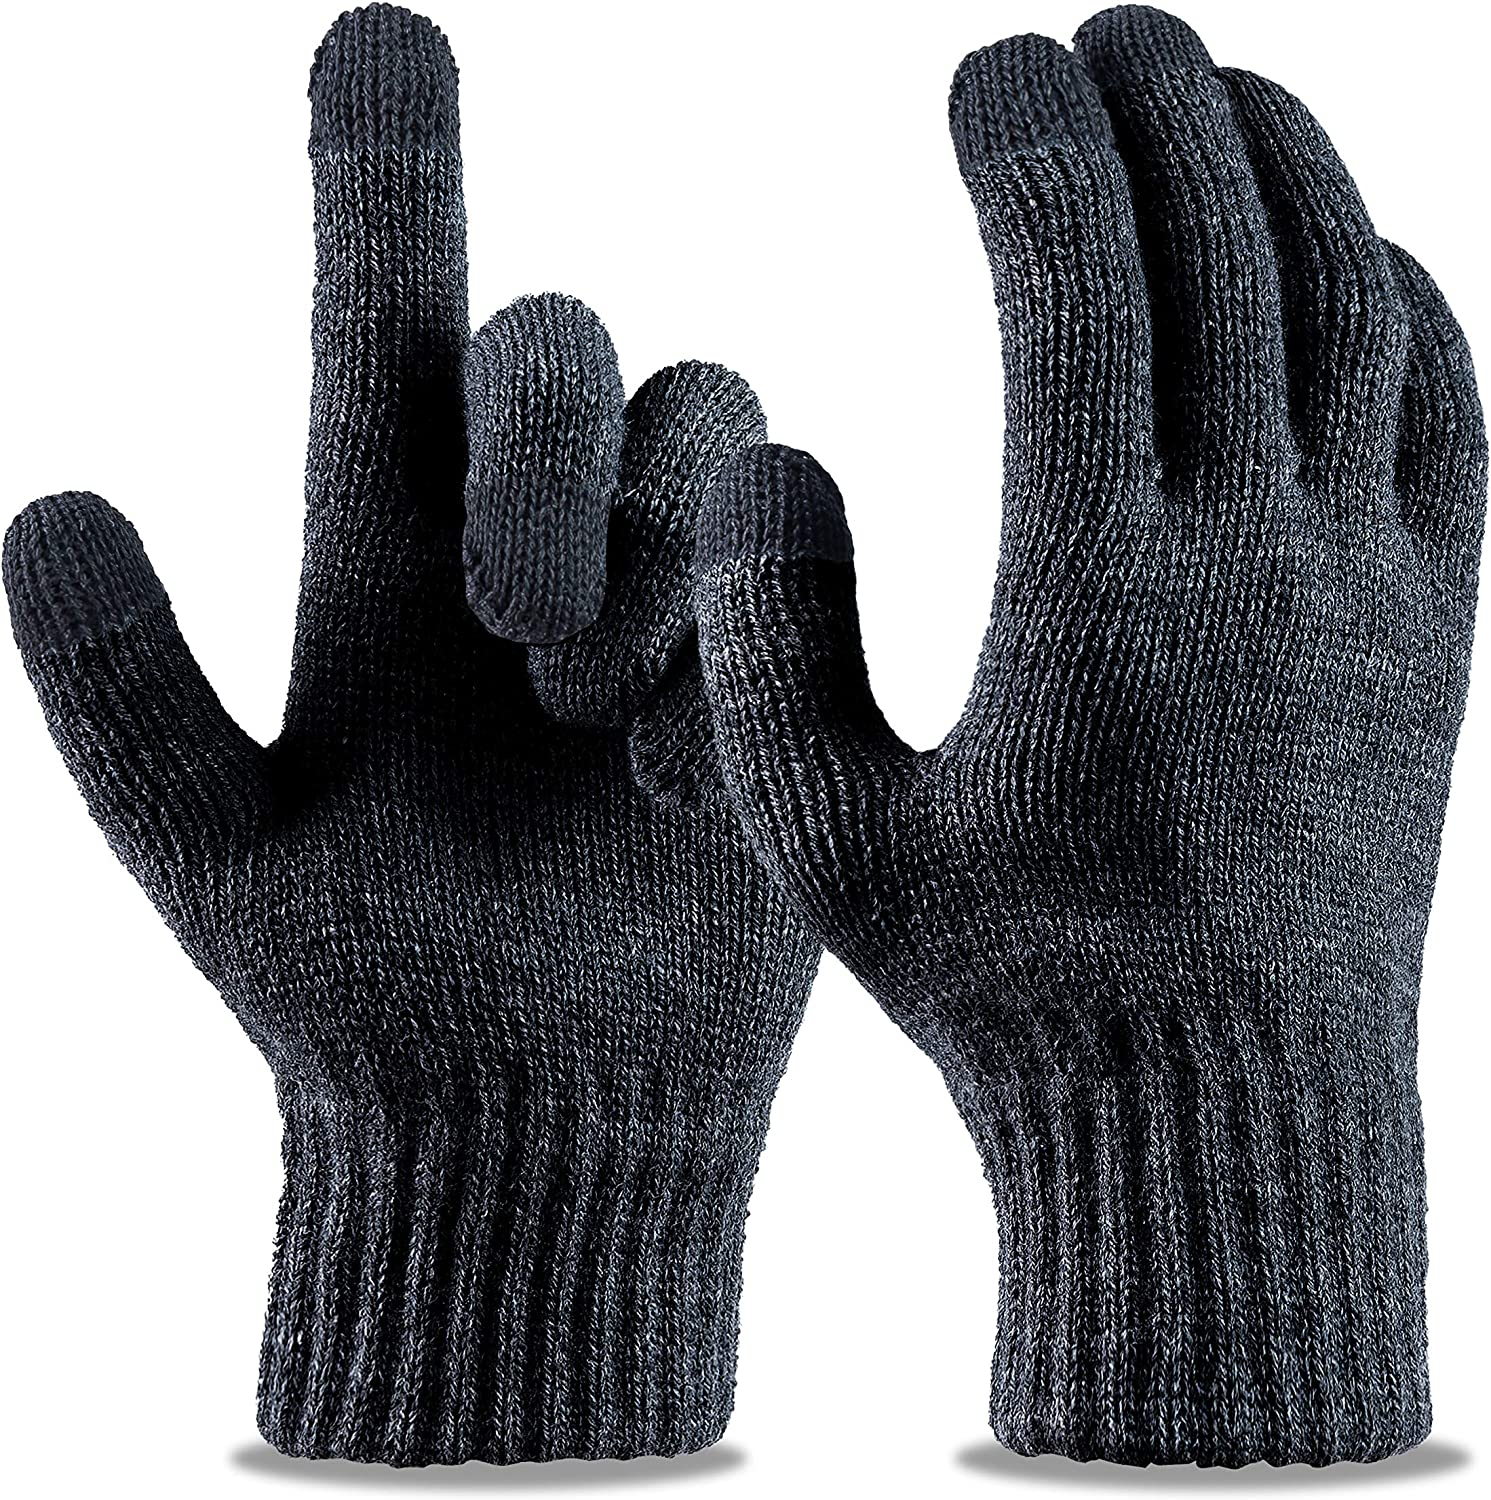 LIZEY Touchscreen Stretch Gloves Warm Knitted Texting Mitten Gloves for Women